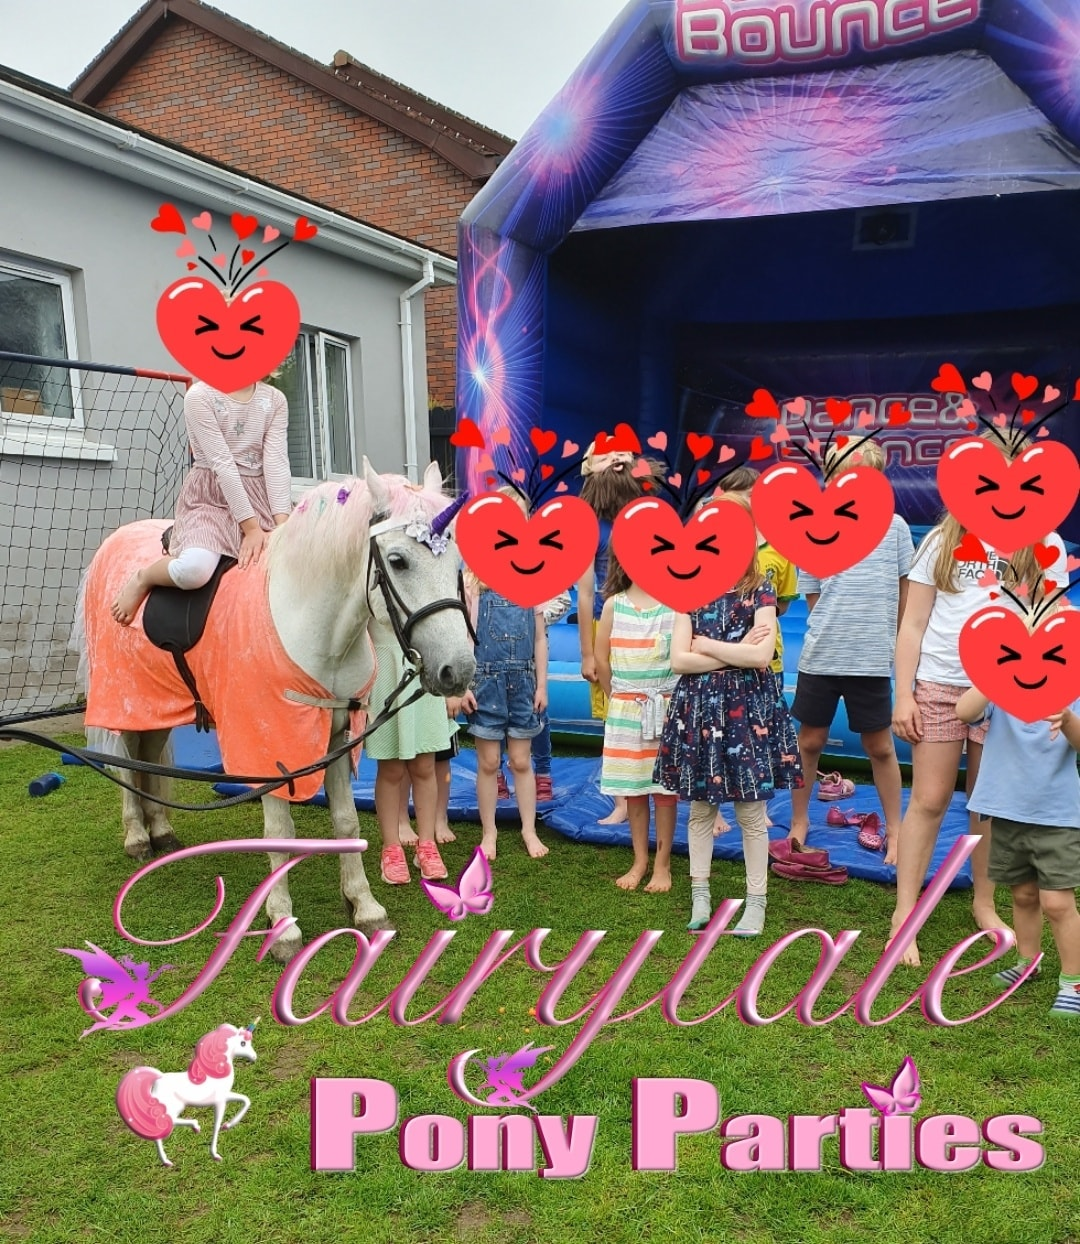 www.fairytaleponyparties.org